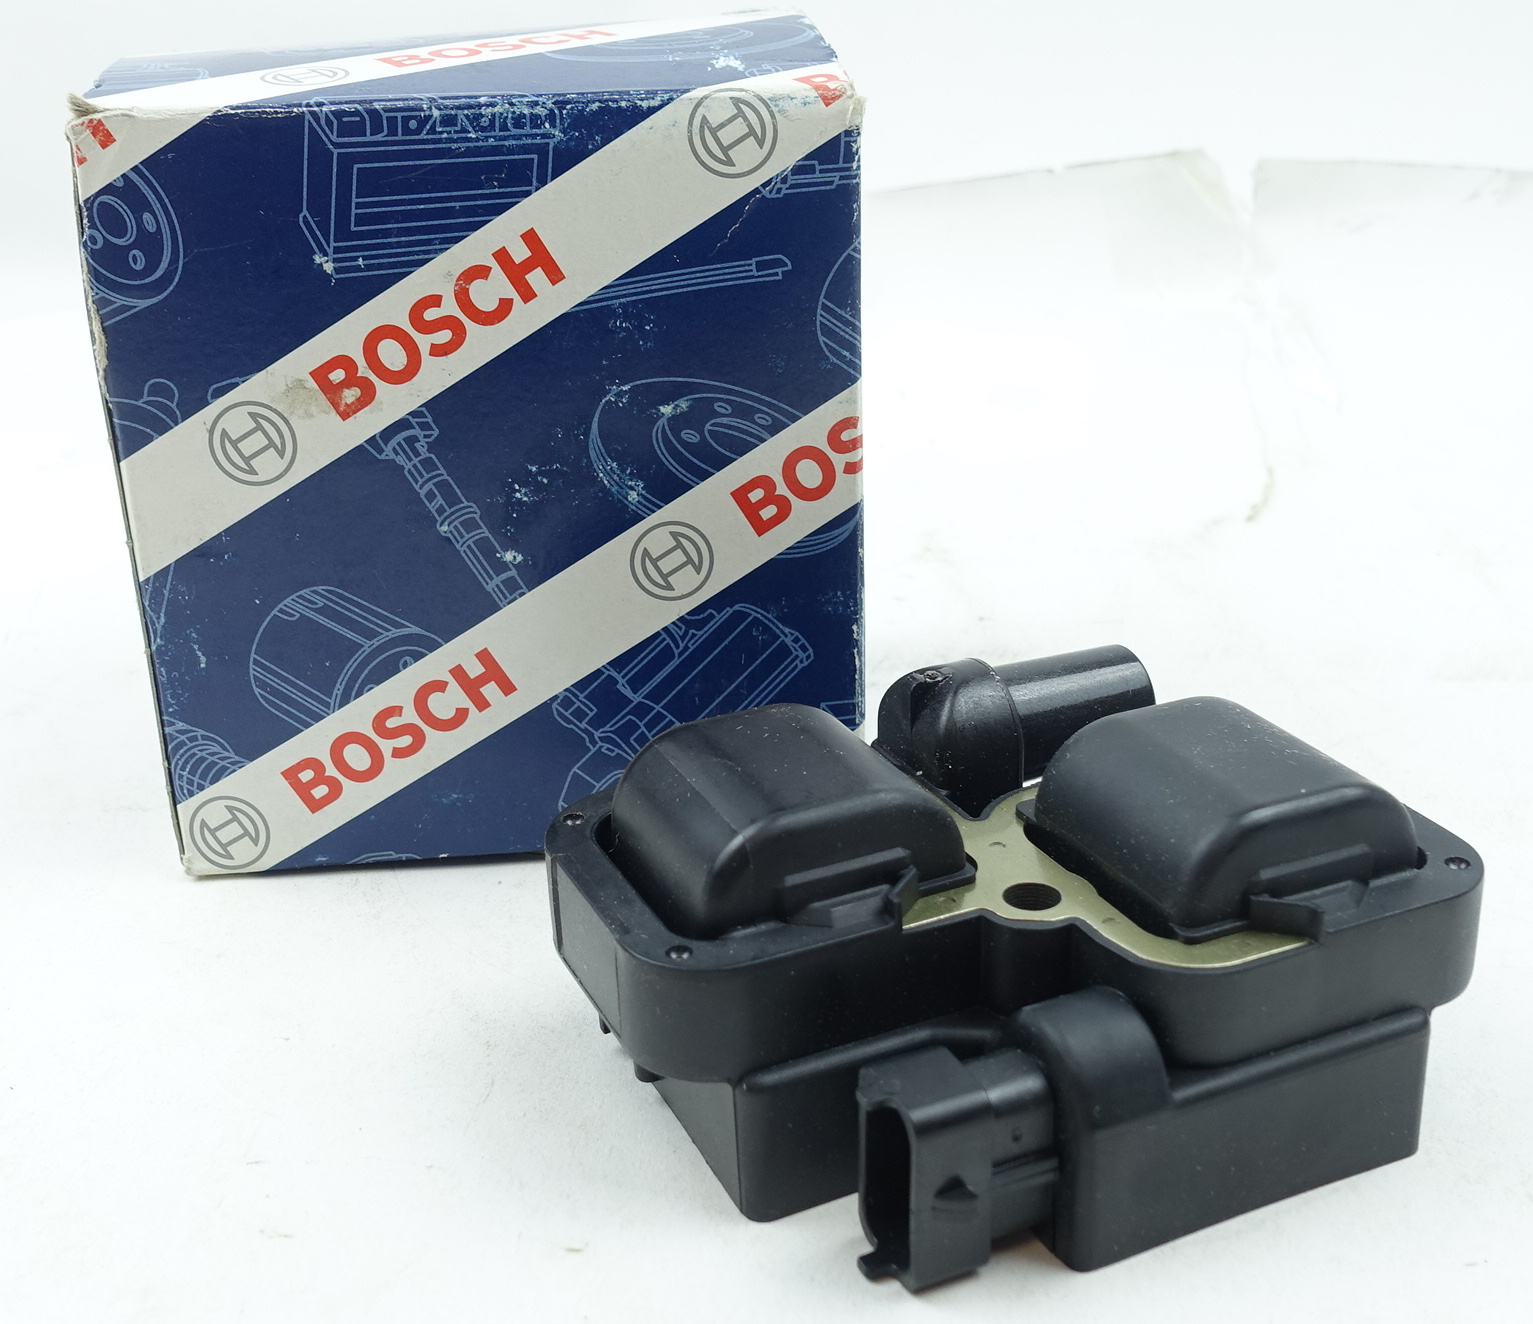 6 Pack Bosch 0221503035 Ignition Coil 0221503035 for Mercedes-Benz C CLK S Class - image 1